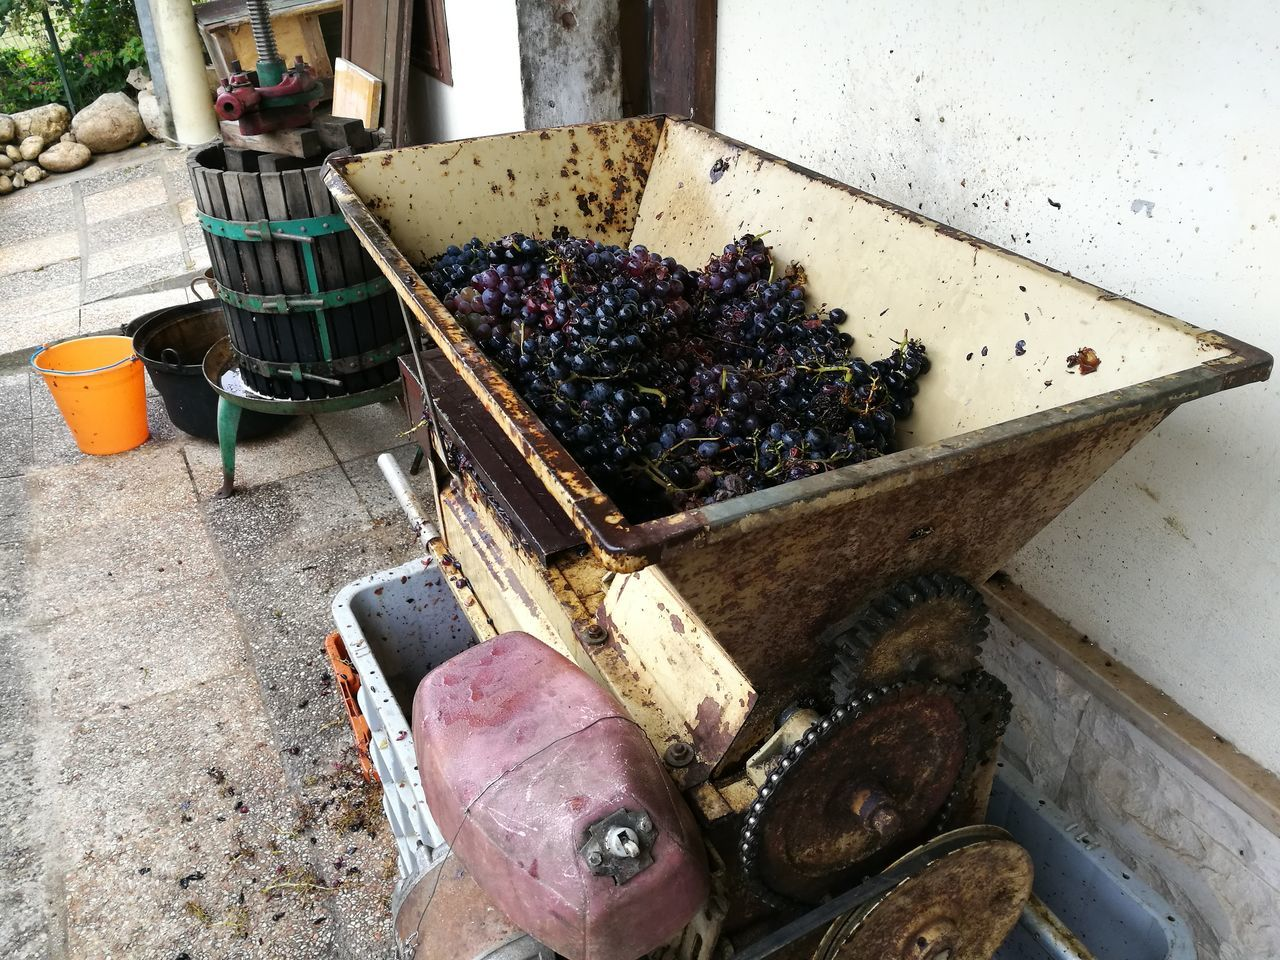 pressing of the must through press Alcohol Ancient Antique Grapefruit Harvest Homemade Food Machinery Manual Work Must Pressing Pressure Process Traditional Culture Winepress Wineproducers Wine Moments